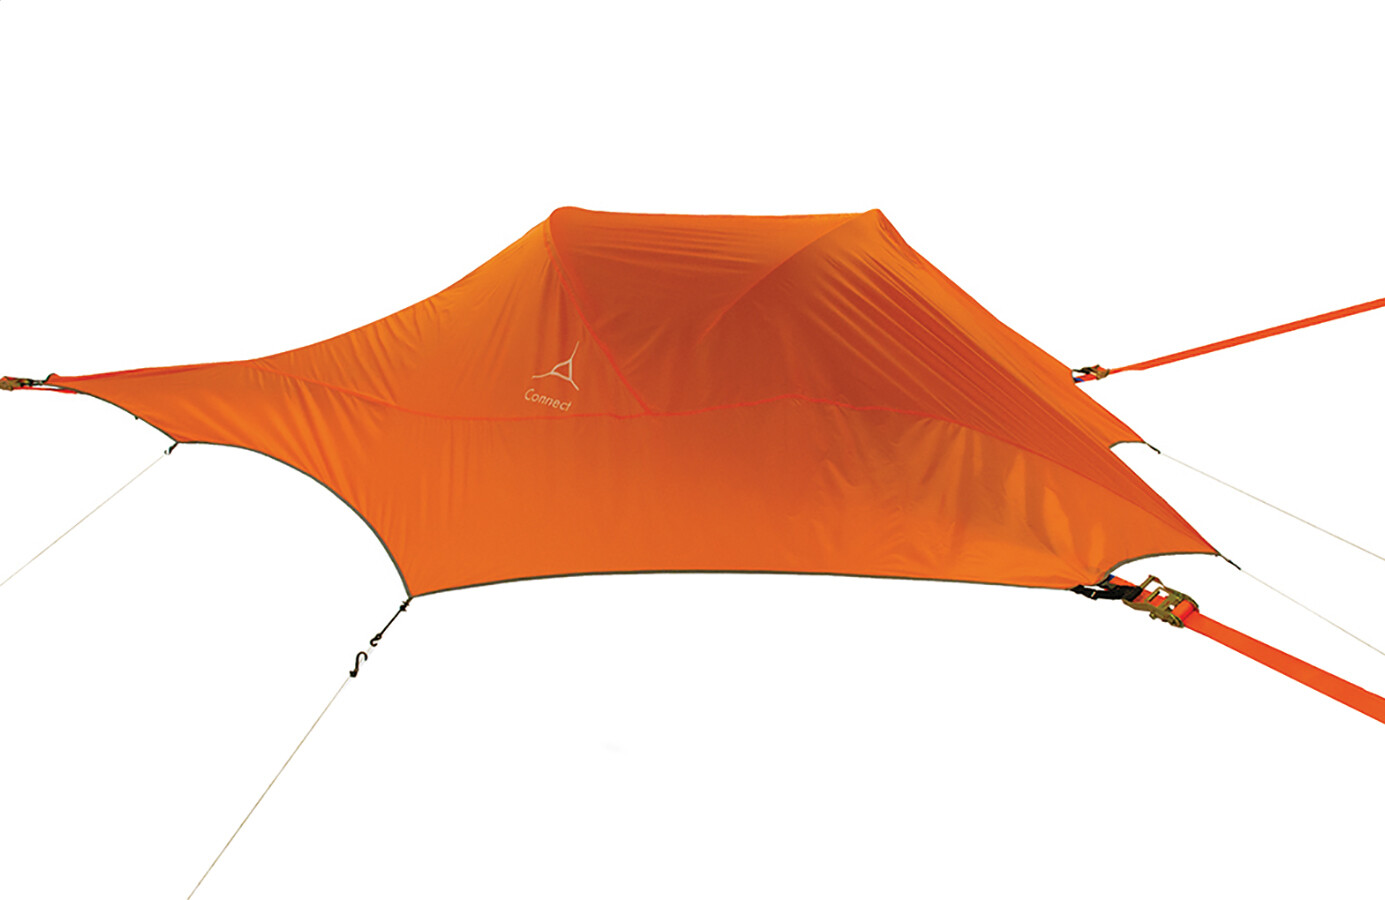 Tentsile Connect Telt, orange (2019) | Misc. Transportation and Storage